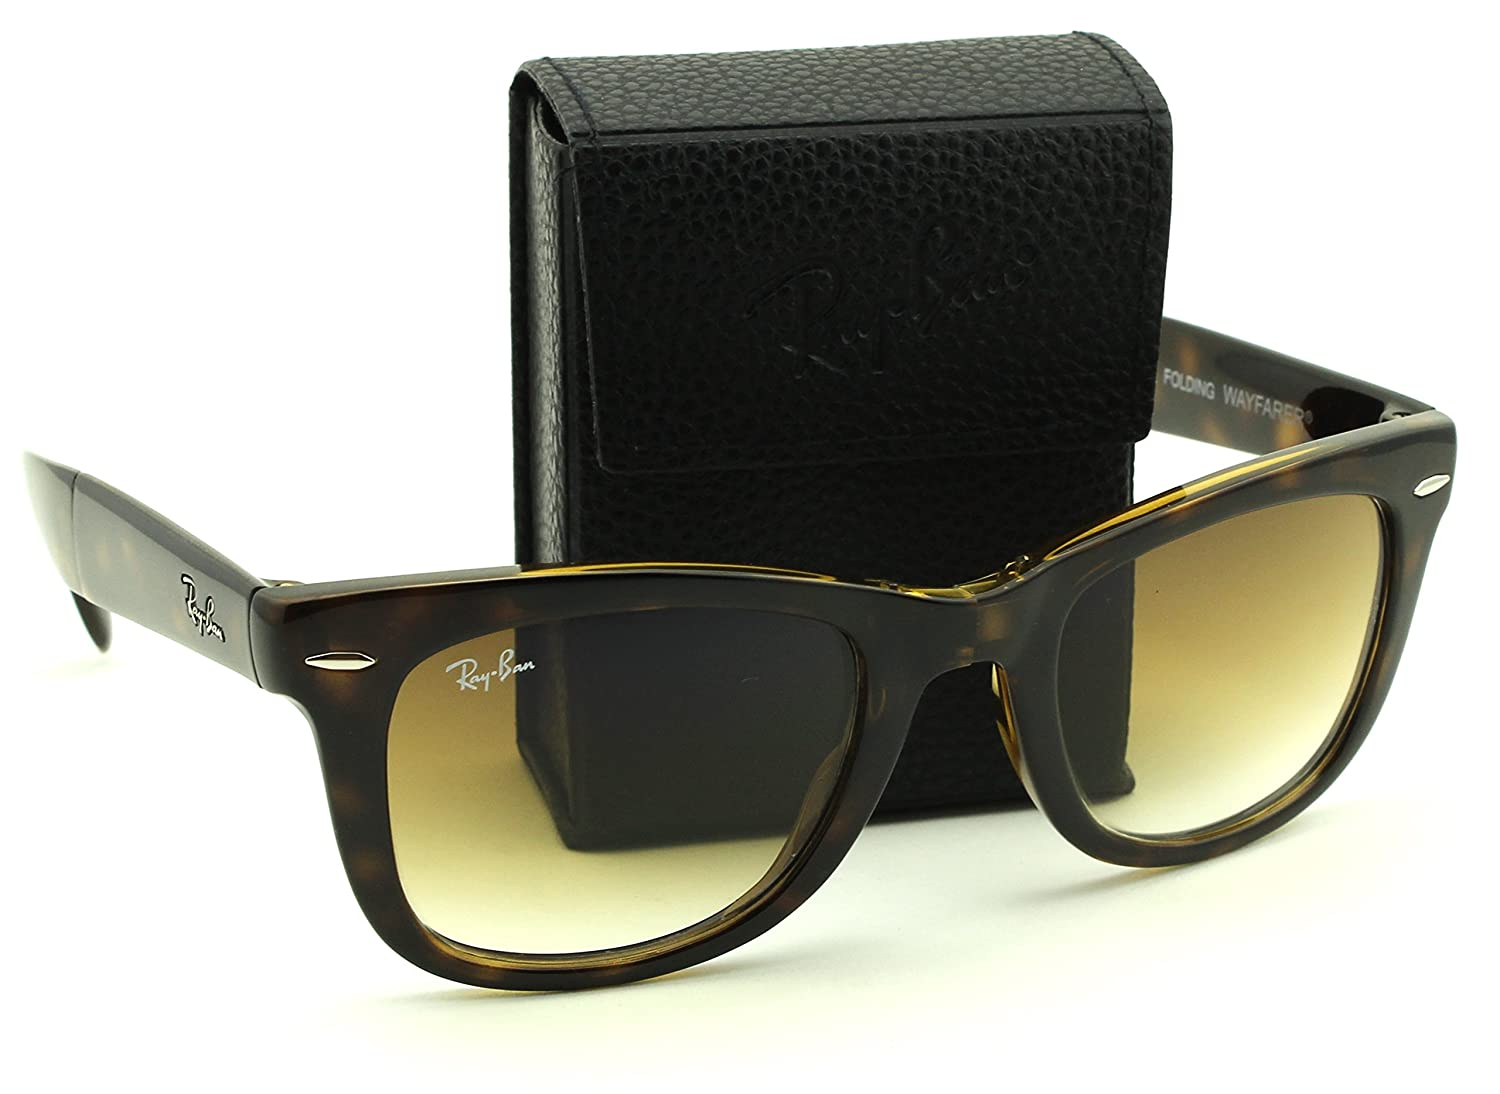 6f18289644f Amazon.com  Ray-Ban RB4105 710 51 Folding Wayfarer Tortoise Frame   Brown  Gradient Lens 54mm  Shoes